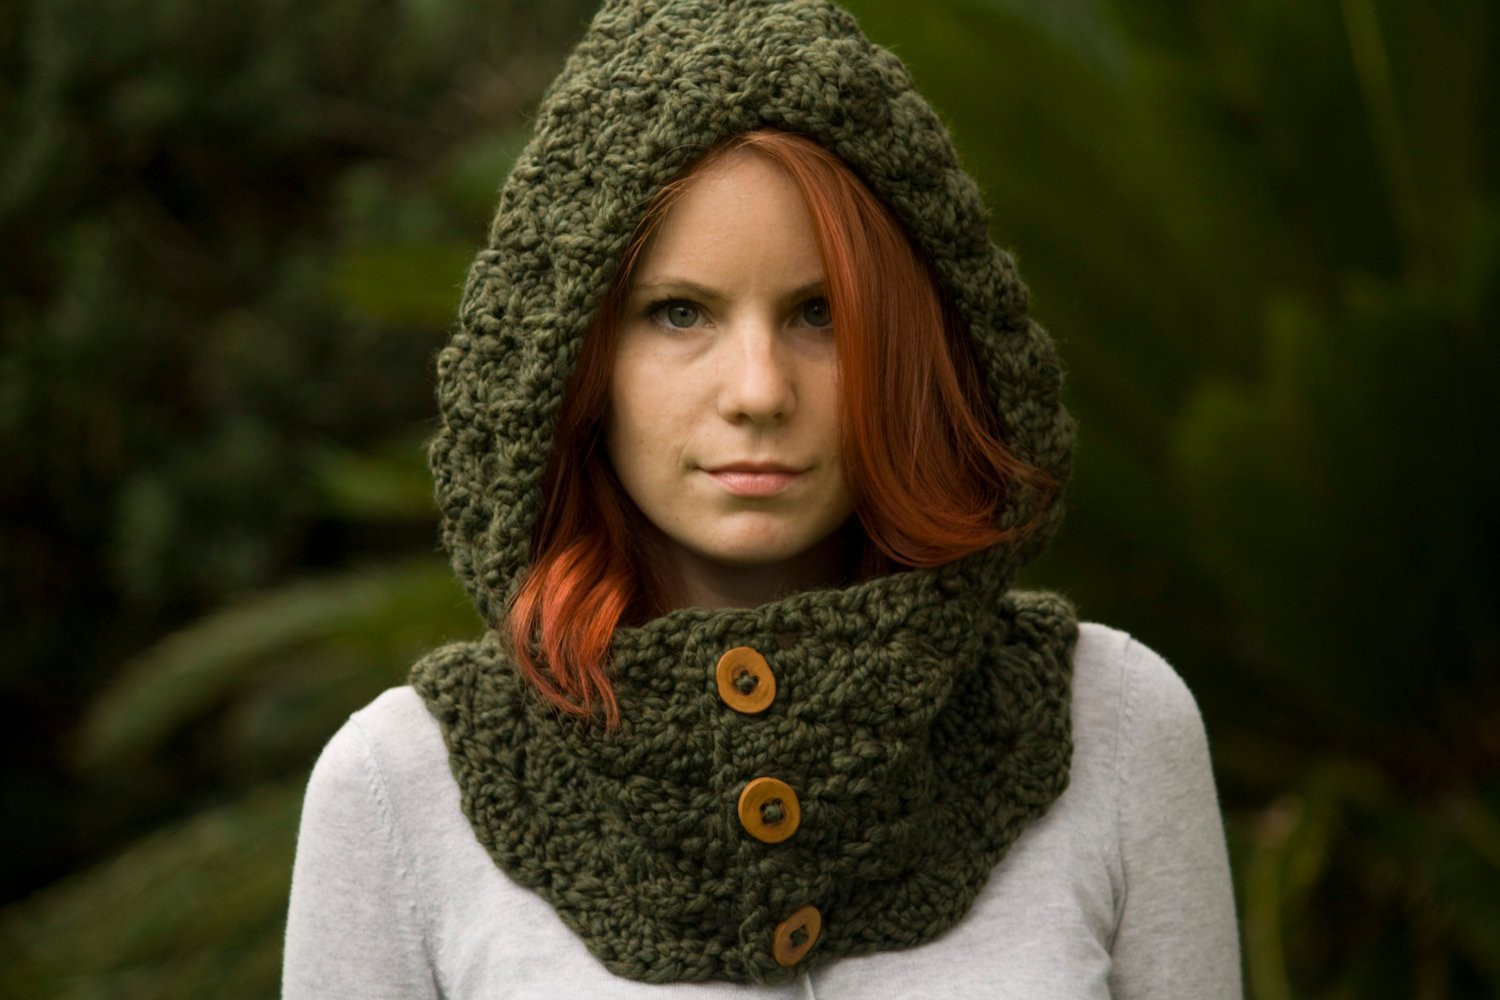 Crochet Cowl Awesome Hooded Cowl Wood button Crochet Hooded Scarf Olive Green Of Adorable 50 Ideas Crochet Cowl